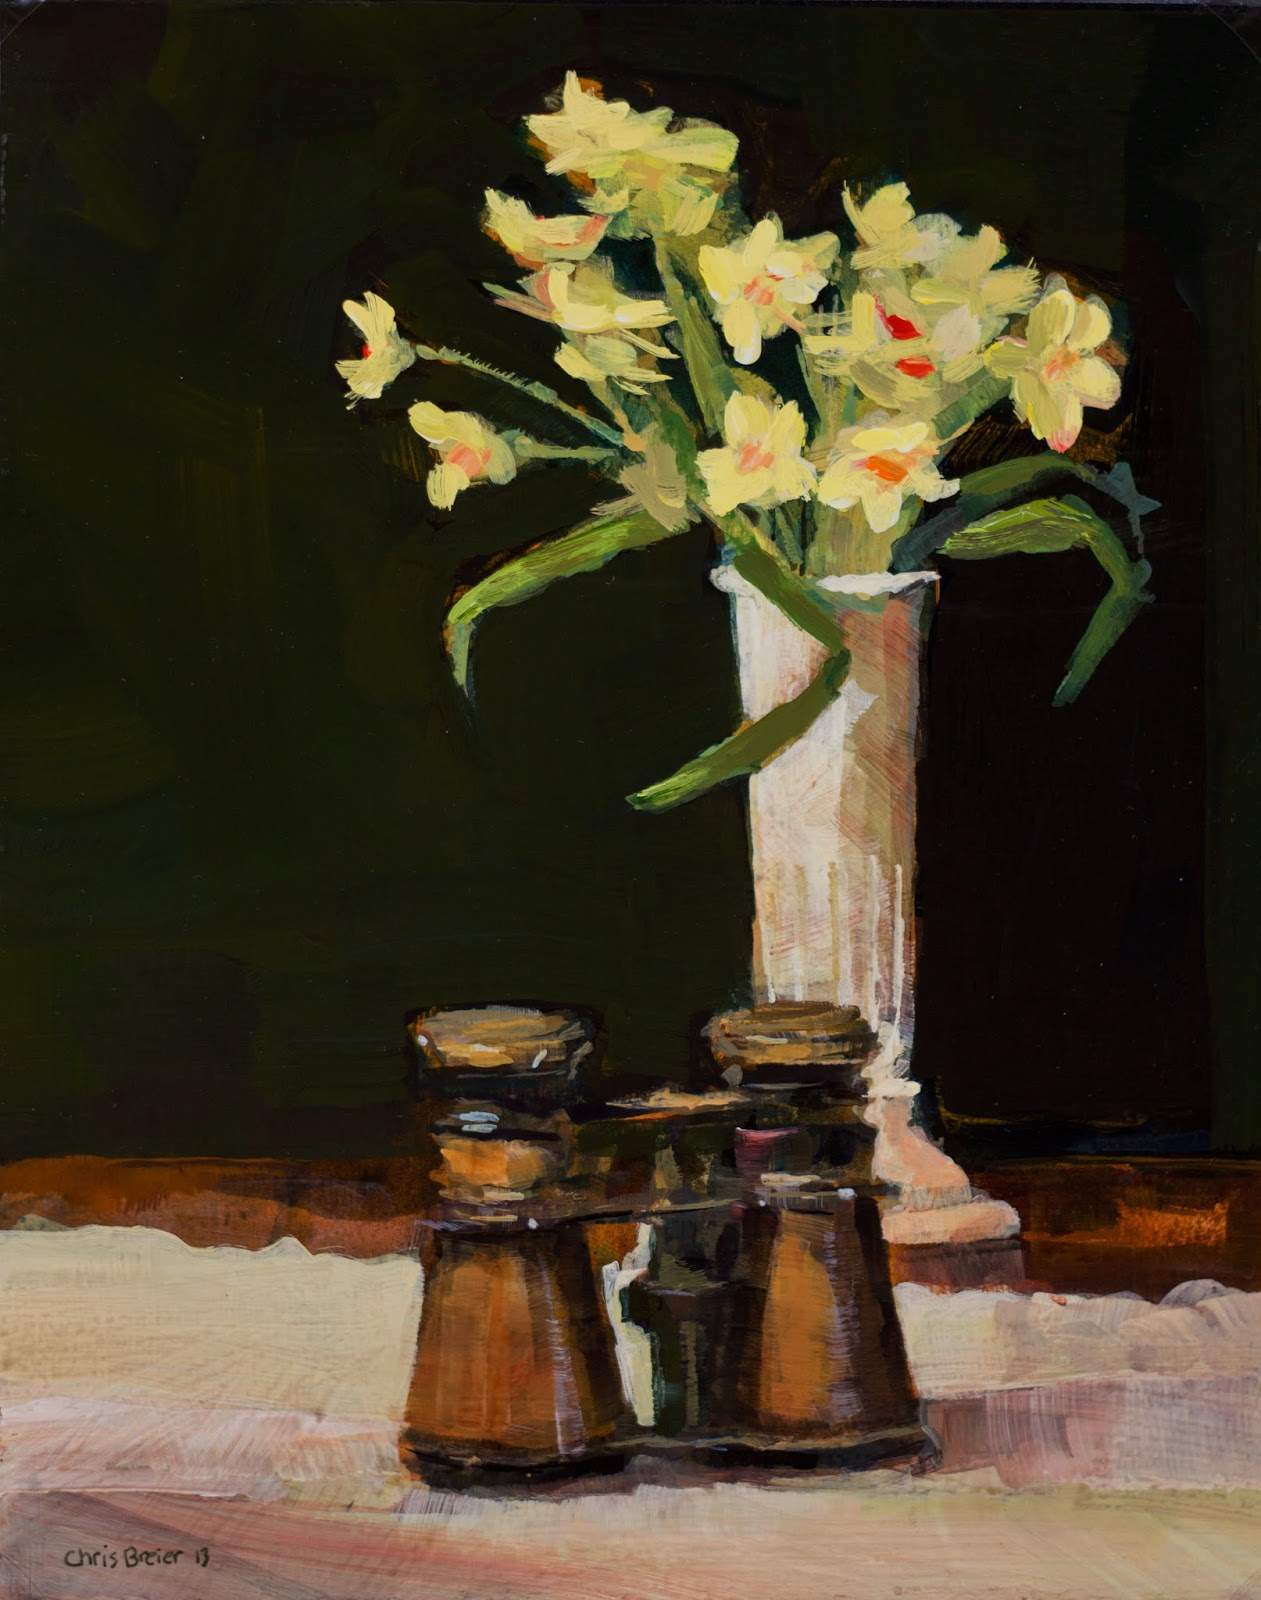 painting of a vase of flowers and antique opera glasses